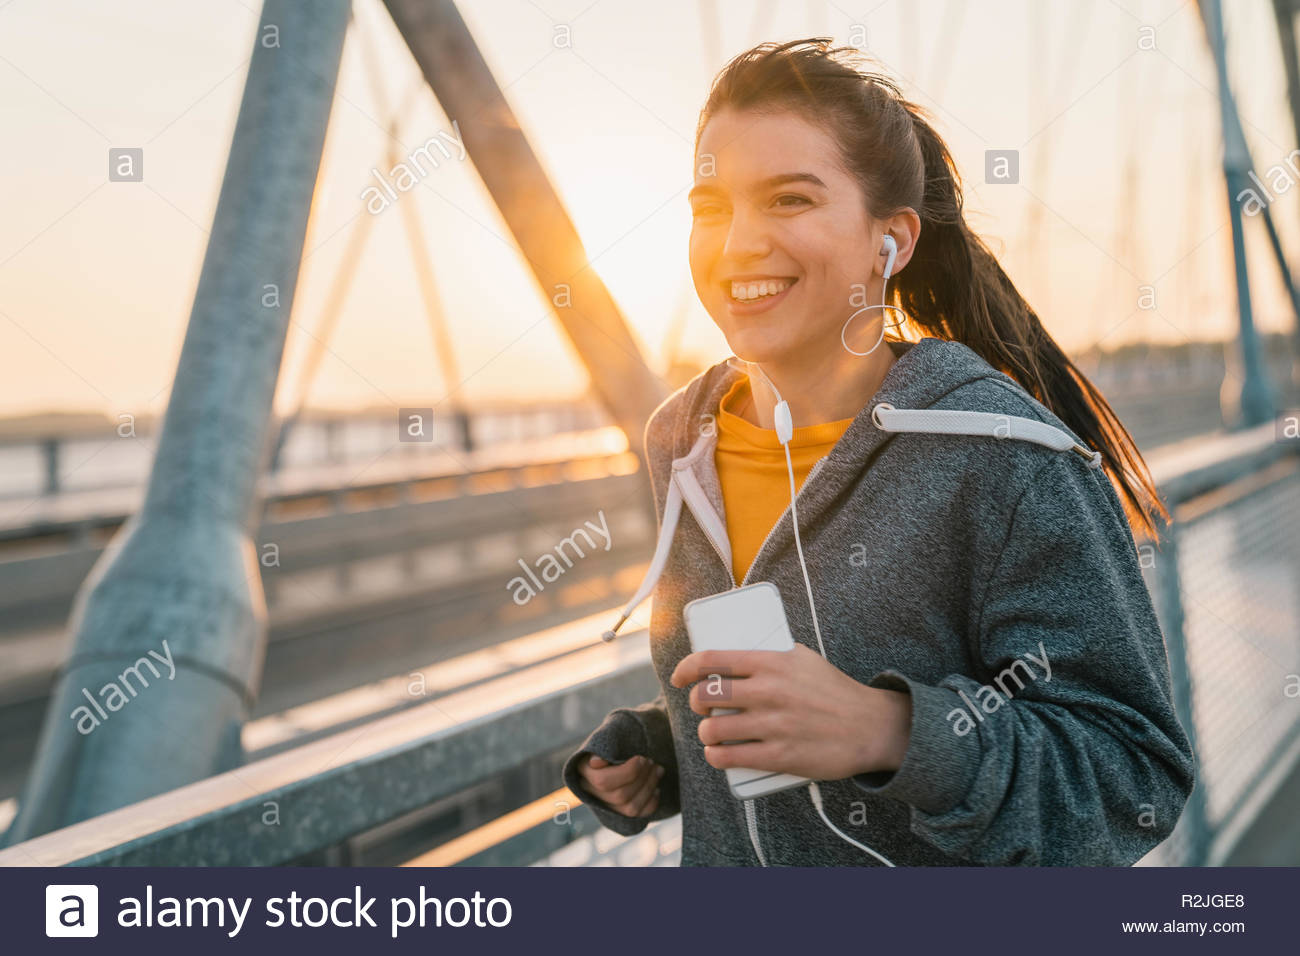 Young sportswoman jogging while smiling and listening to music on a bridge at sunrise. - Stock Image